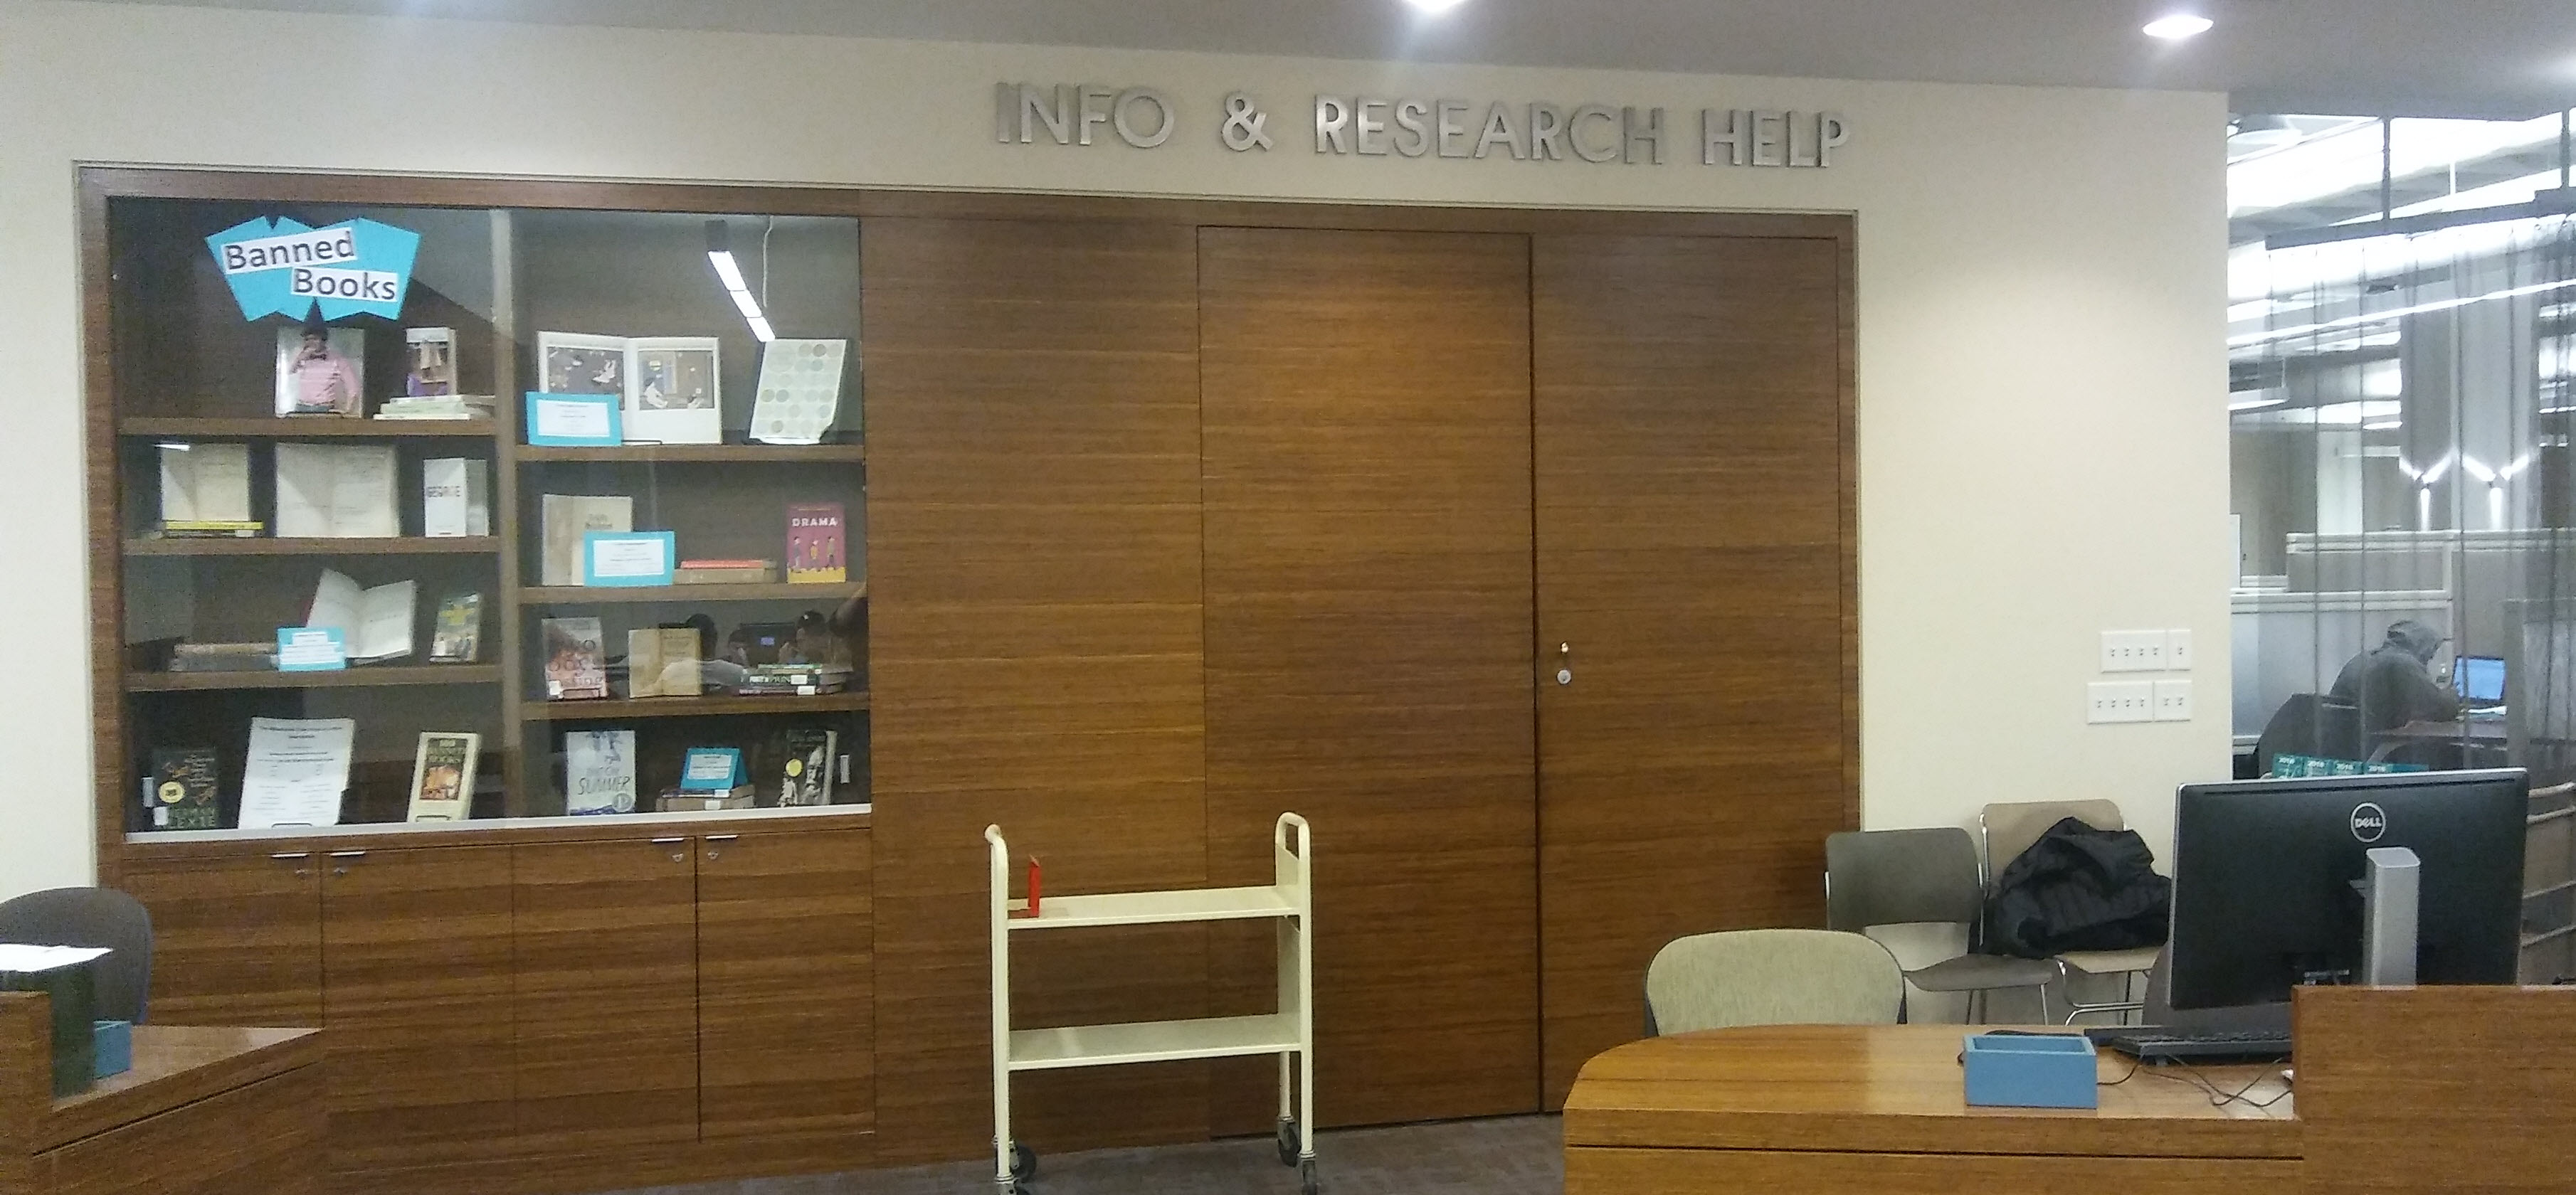 photo of the Info & Research Help Desk and display